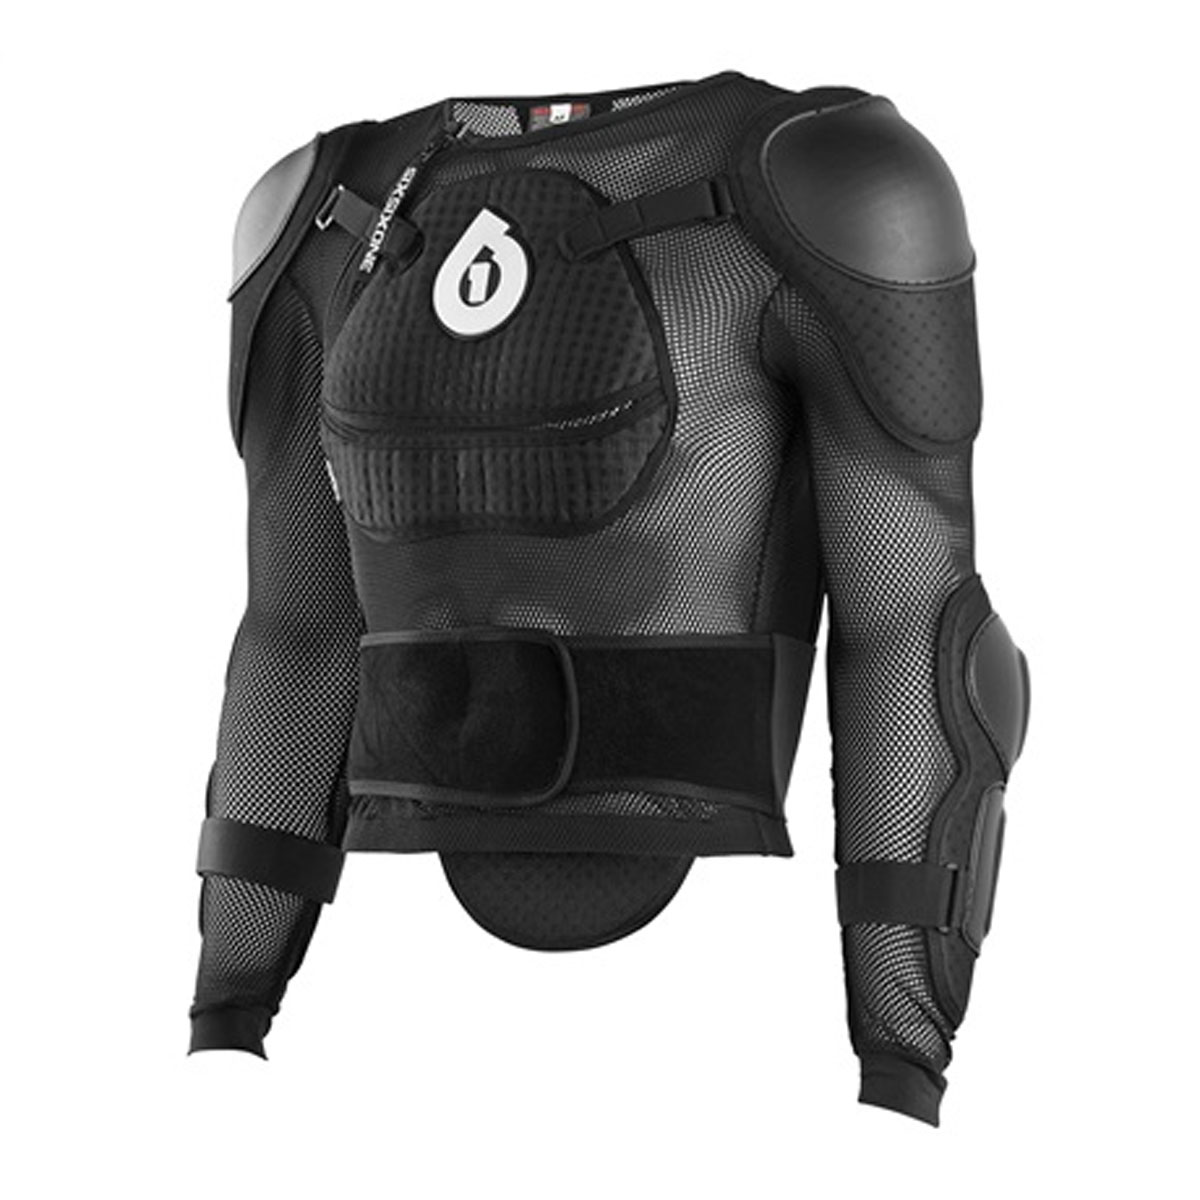 SixSixOne 2015 Men's Comp Presure Suite BMX/Moto Body Armour - 6990